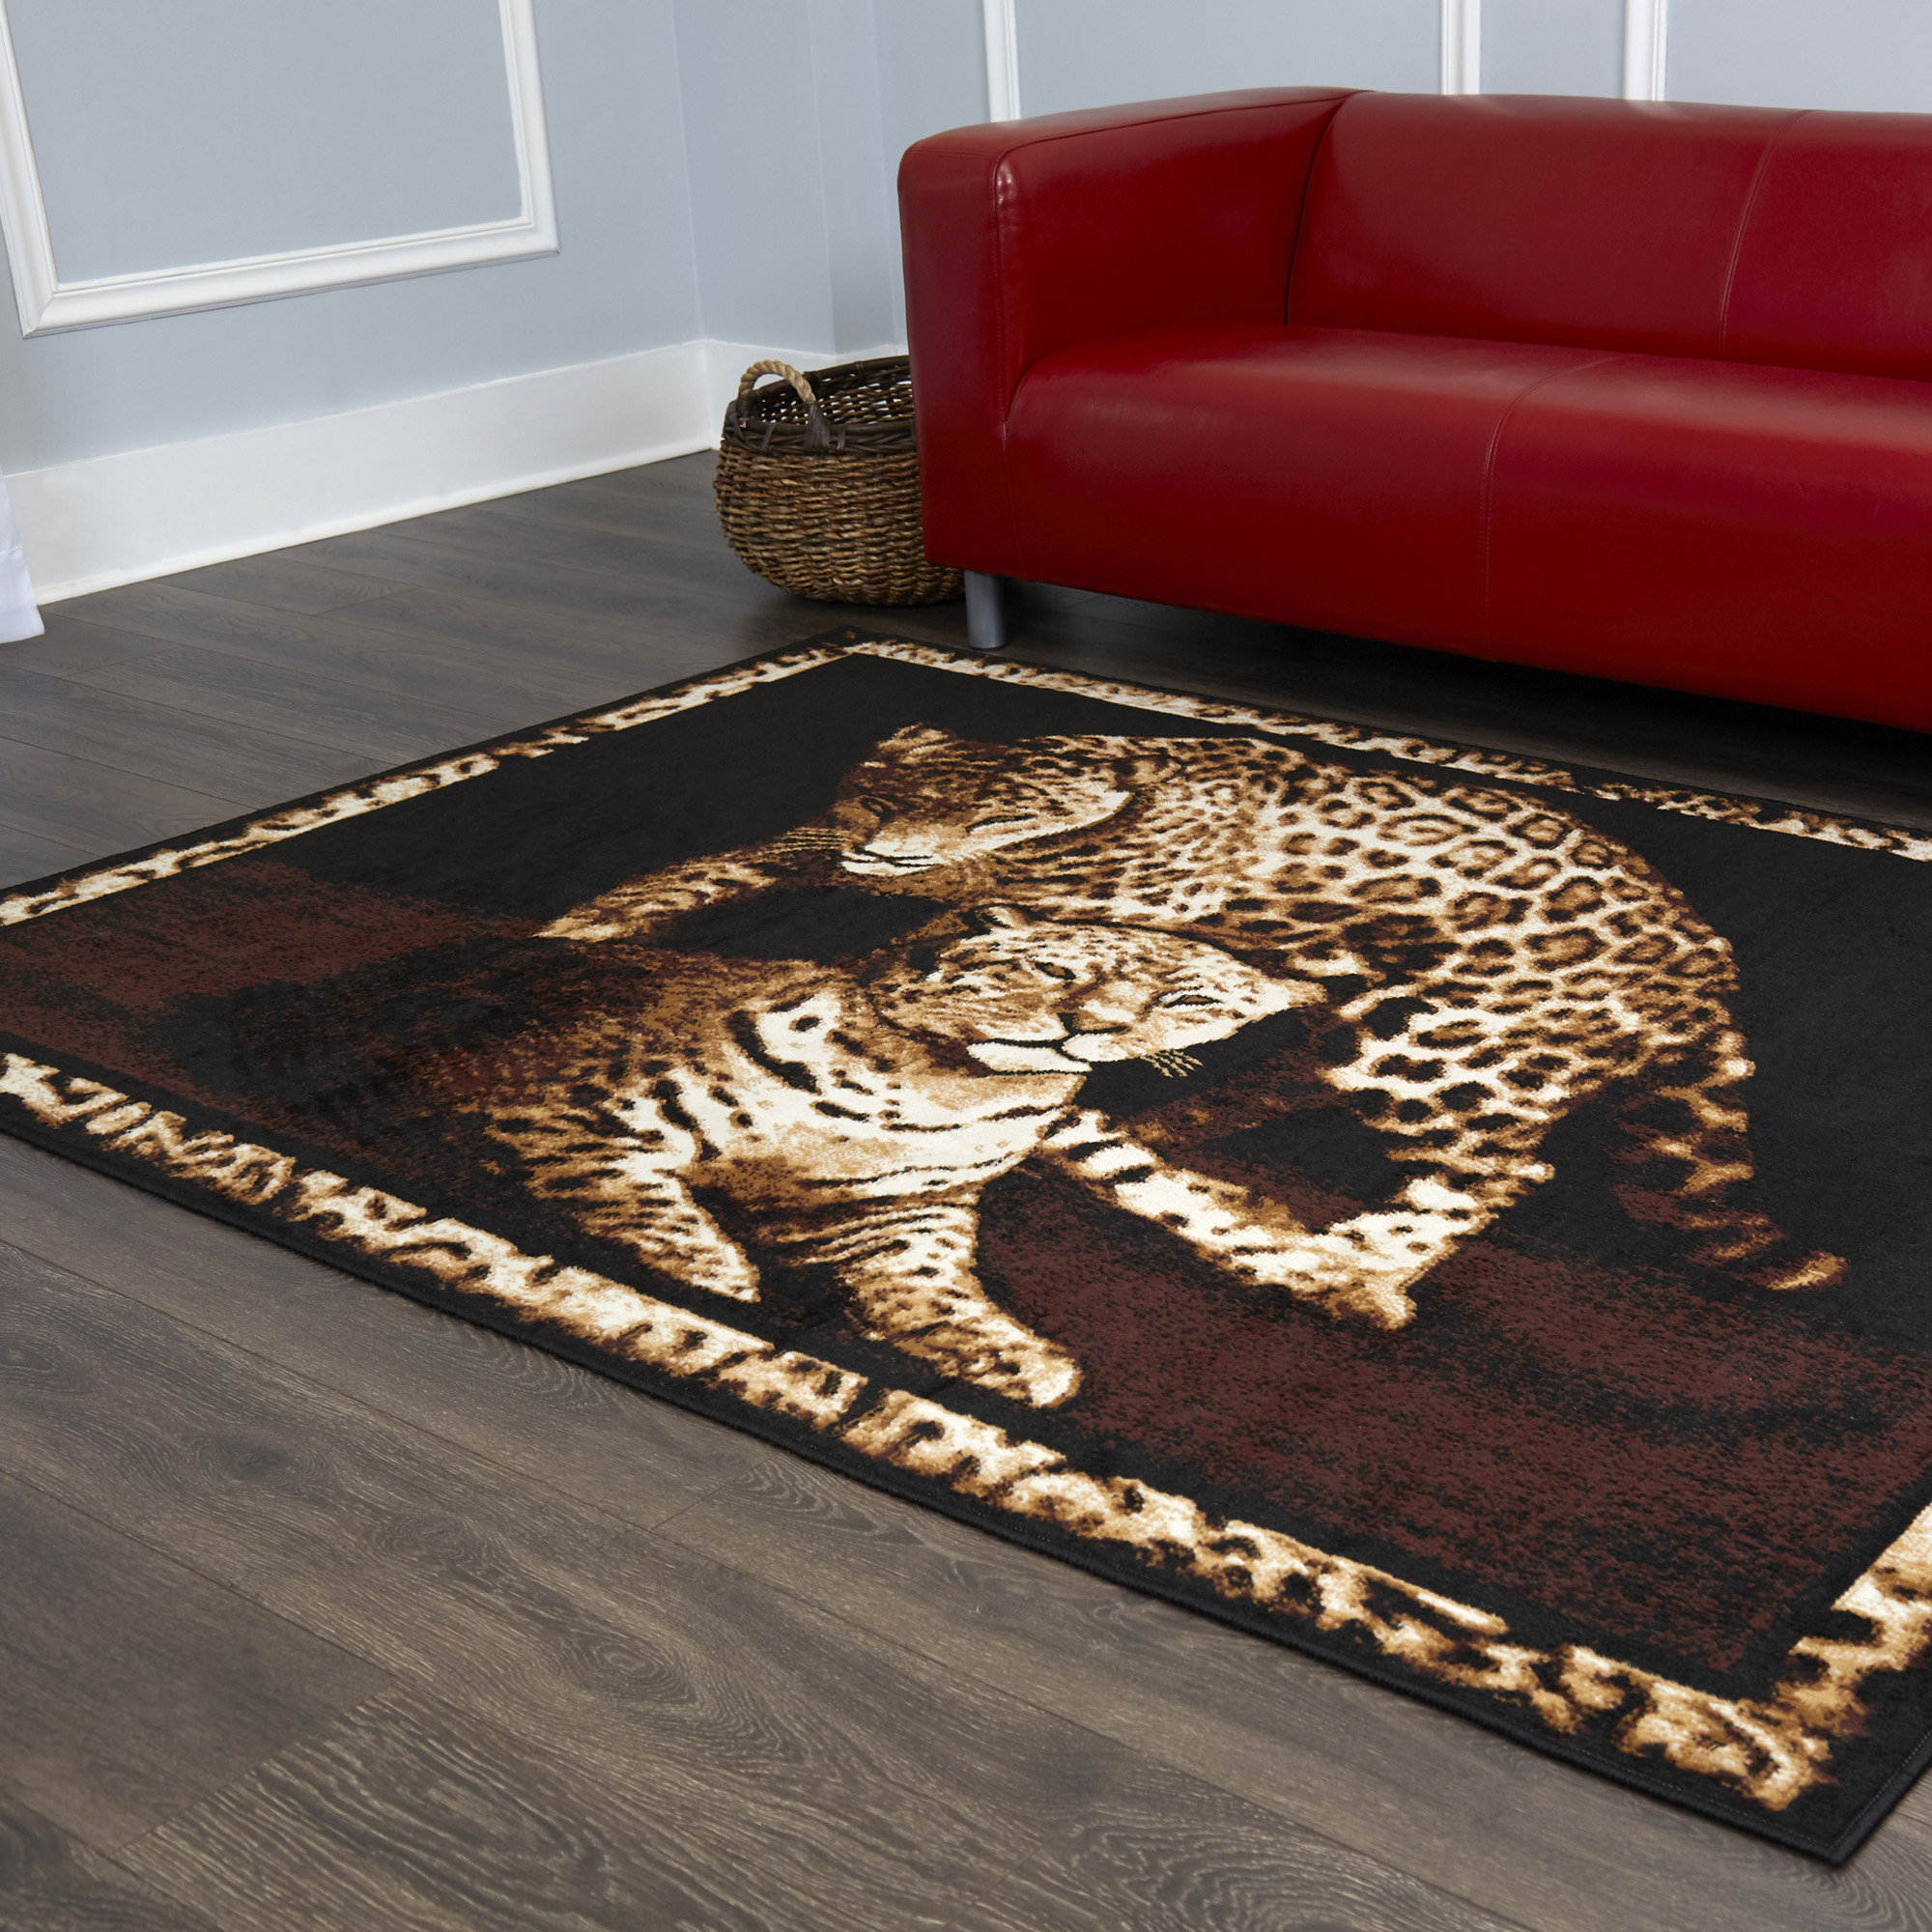 Leopard Family Area Rug 6x8 African Border Carpet New ...